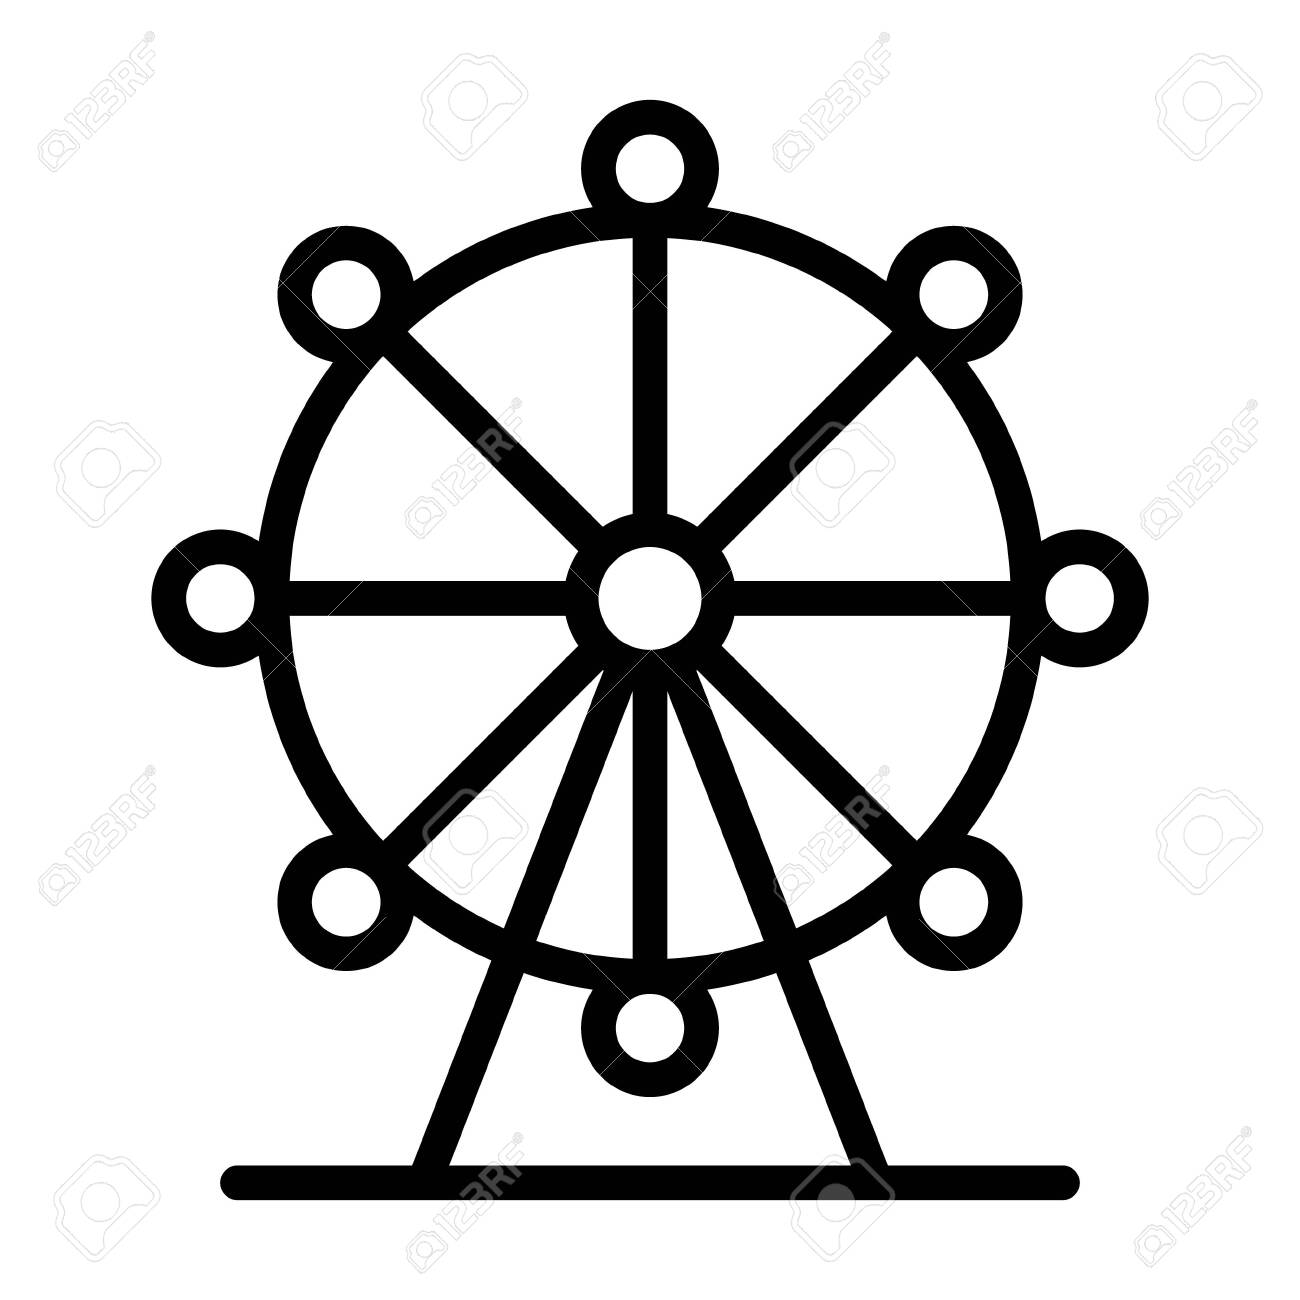 Ferris Wheel Amusement Ride With Observation Pods Line Art Vector Royalty Free Cliparts Vectors And Stock Illustration Image 136392769